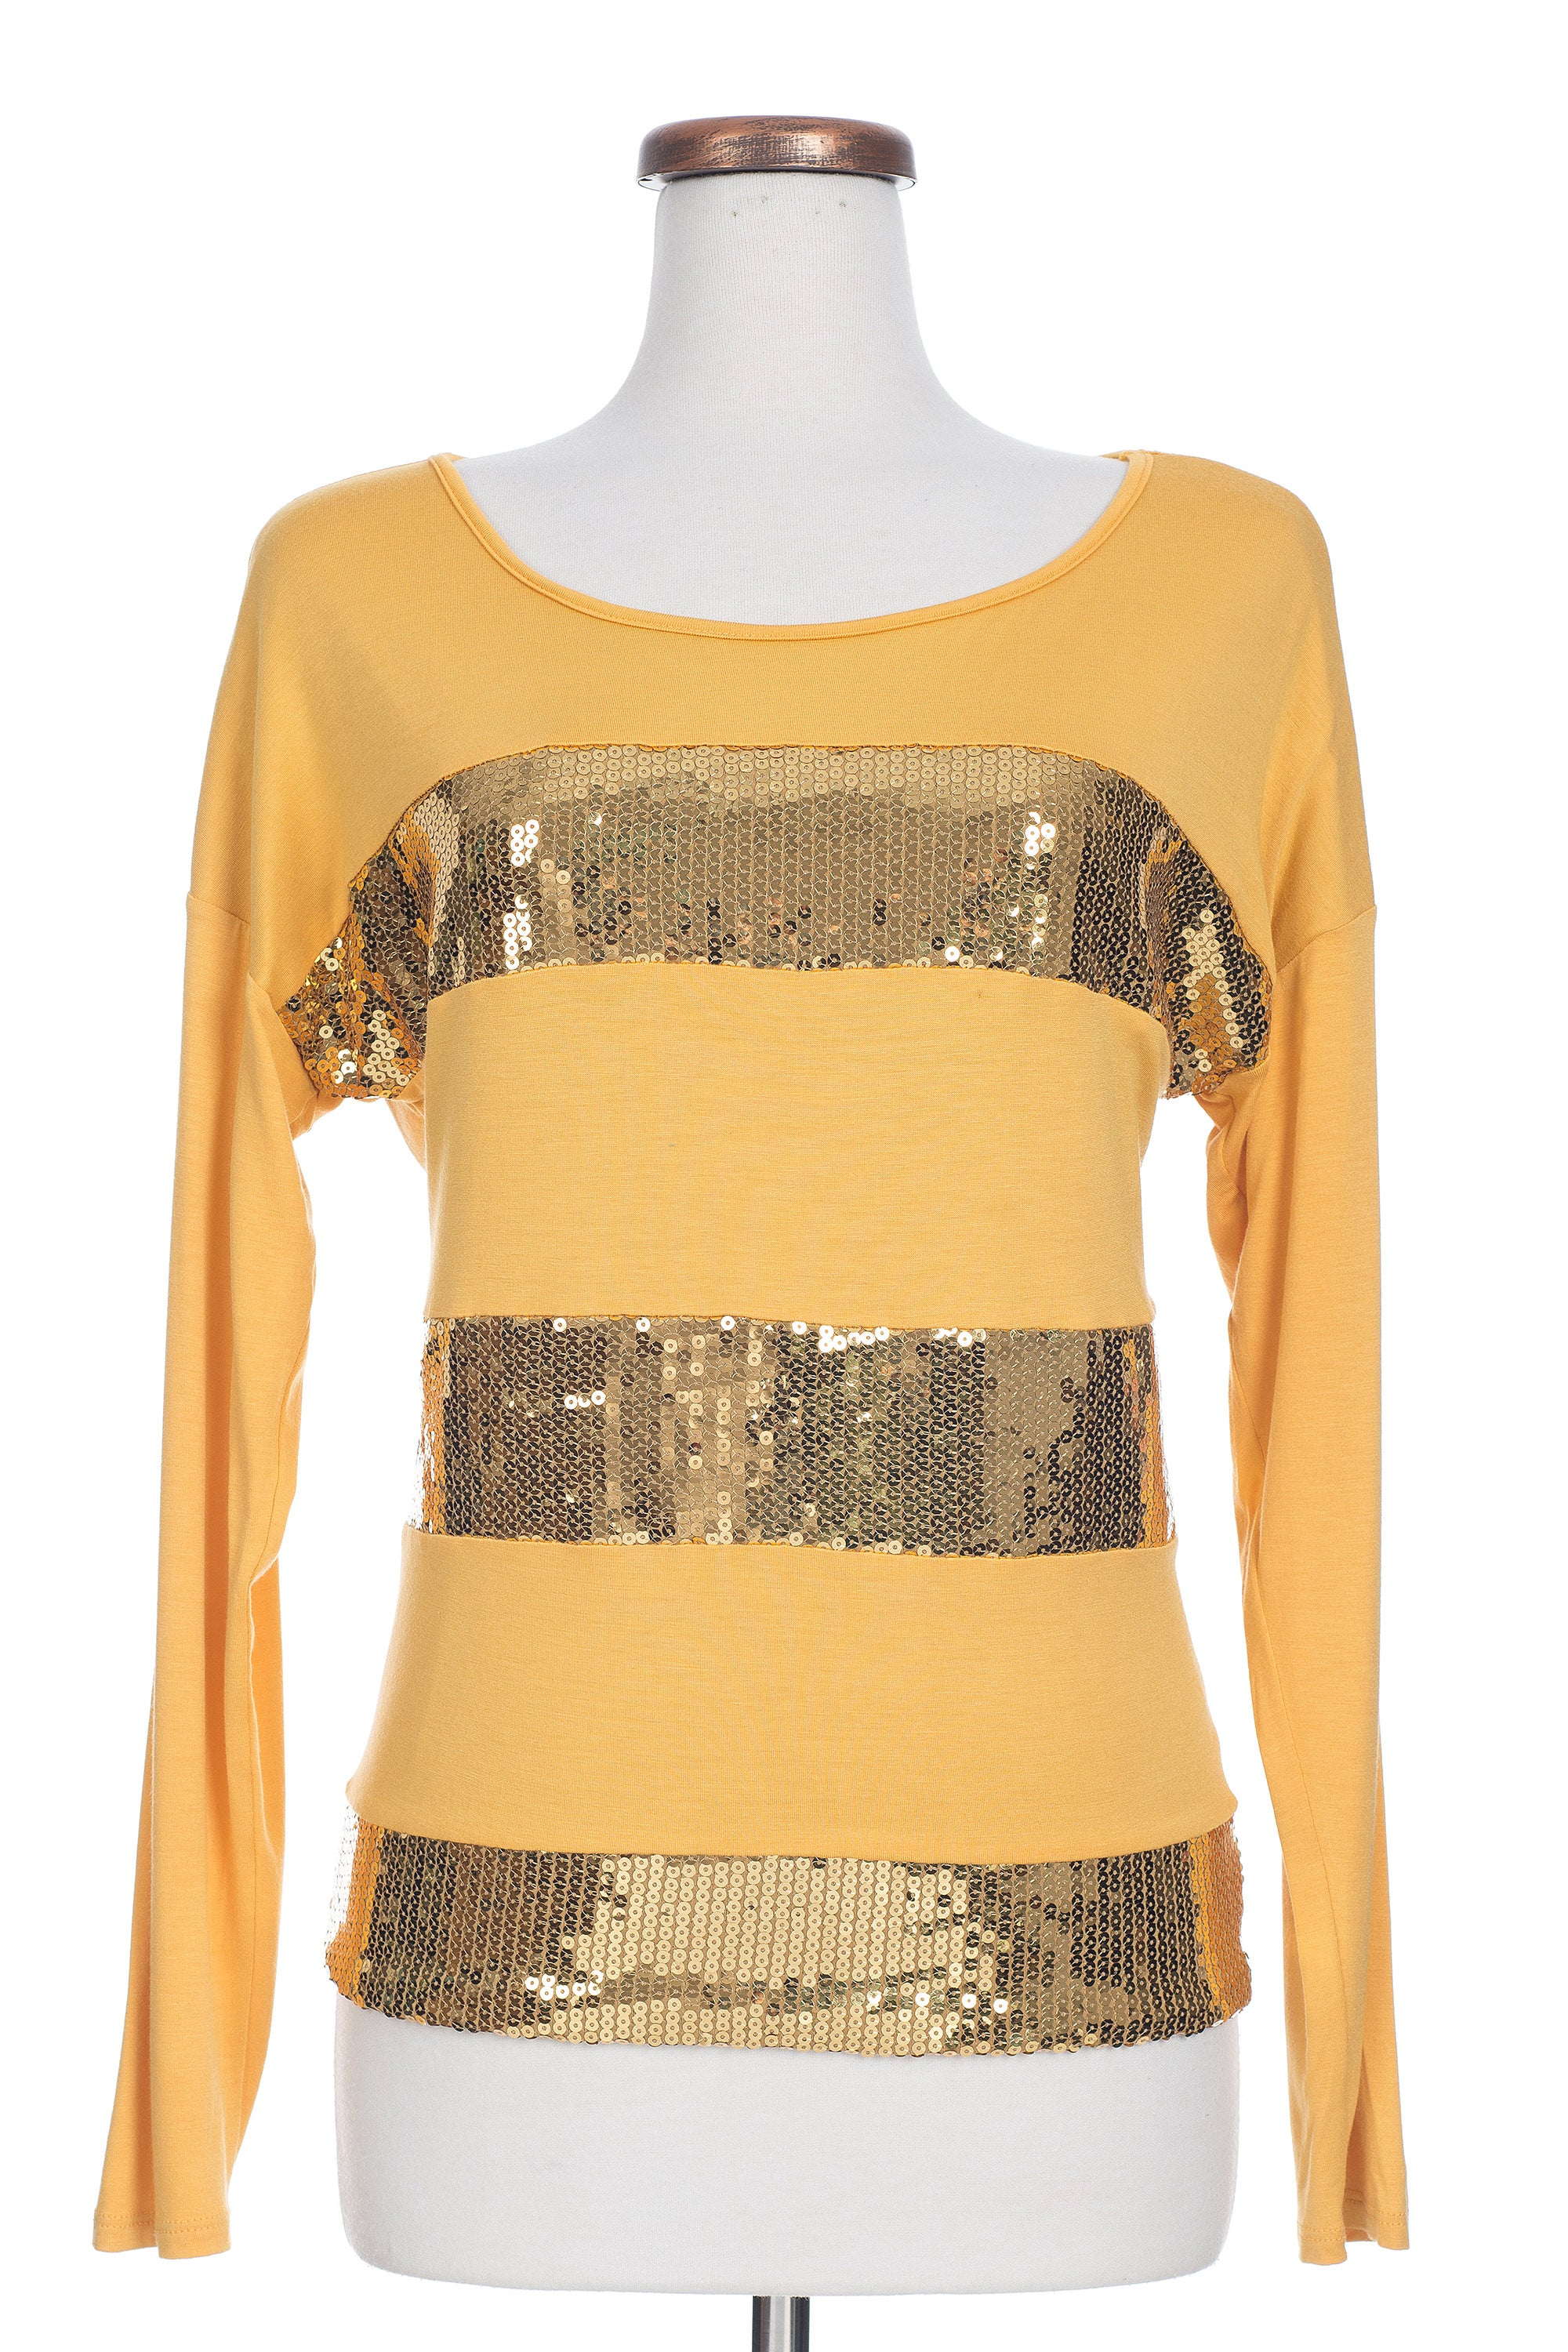 Type 3 Glimmering Gold Top